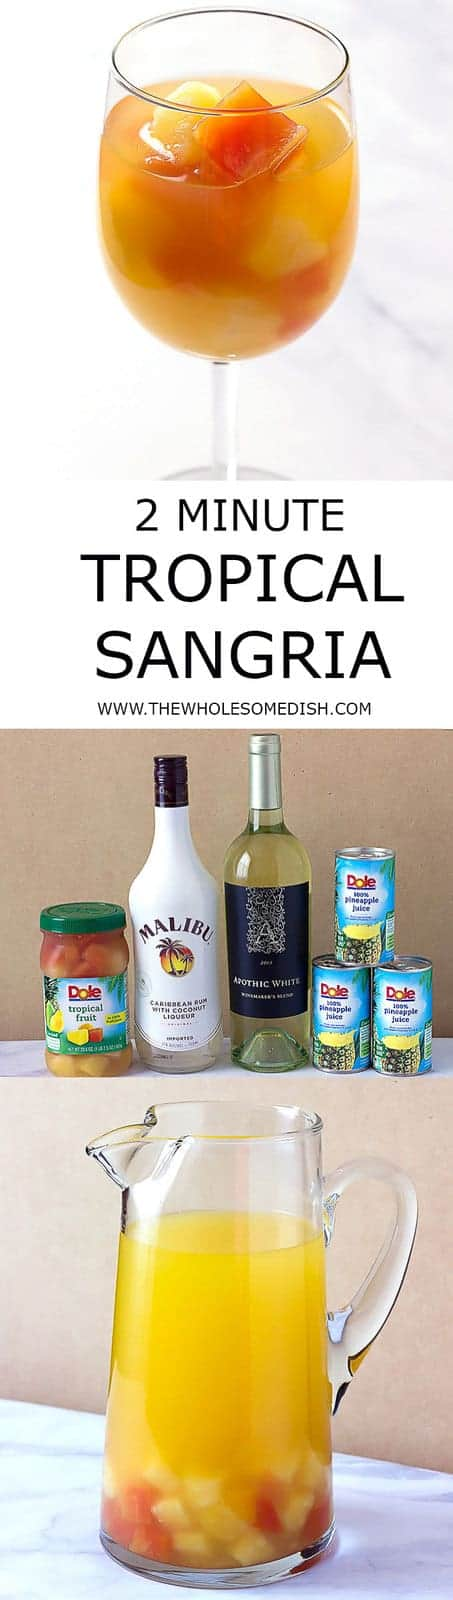 2 Minute Tropical Sangria - A simple tropical sangria recipe that can be made in minutes, made with Malibu coconut rum, pineapple juice, white wine, and mixed tropical fruit.